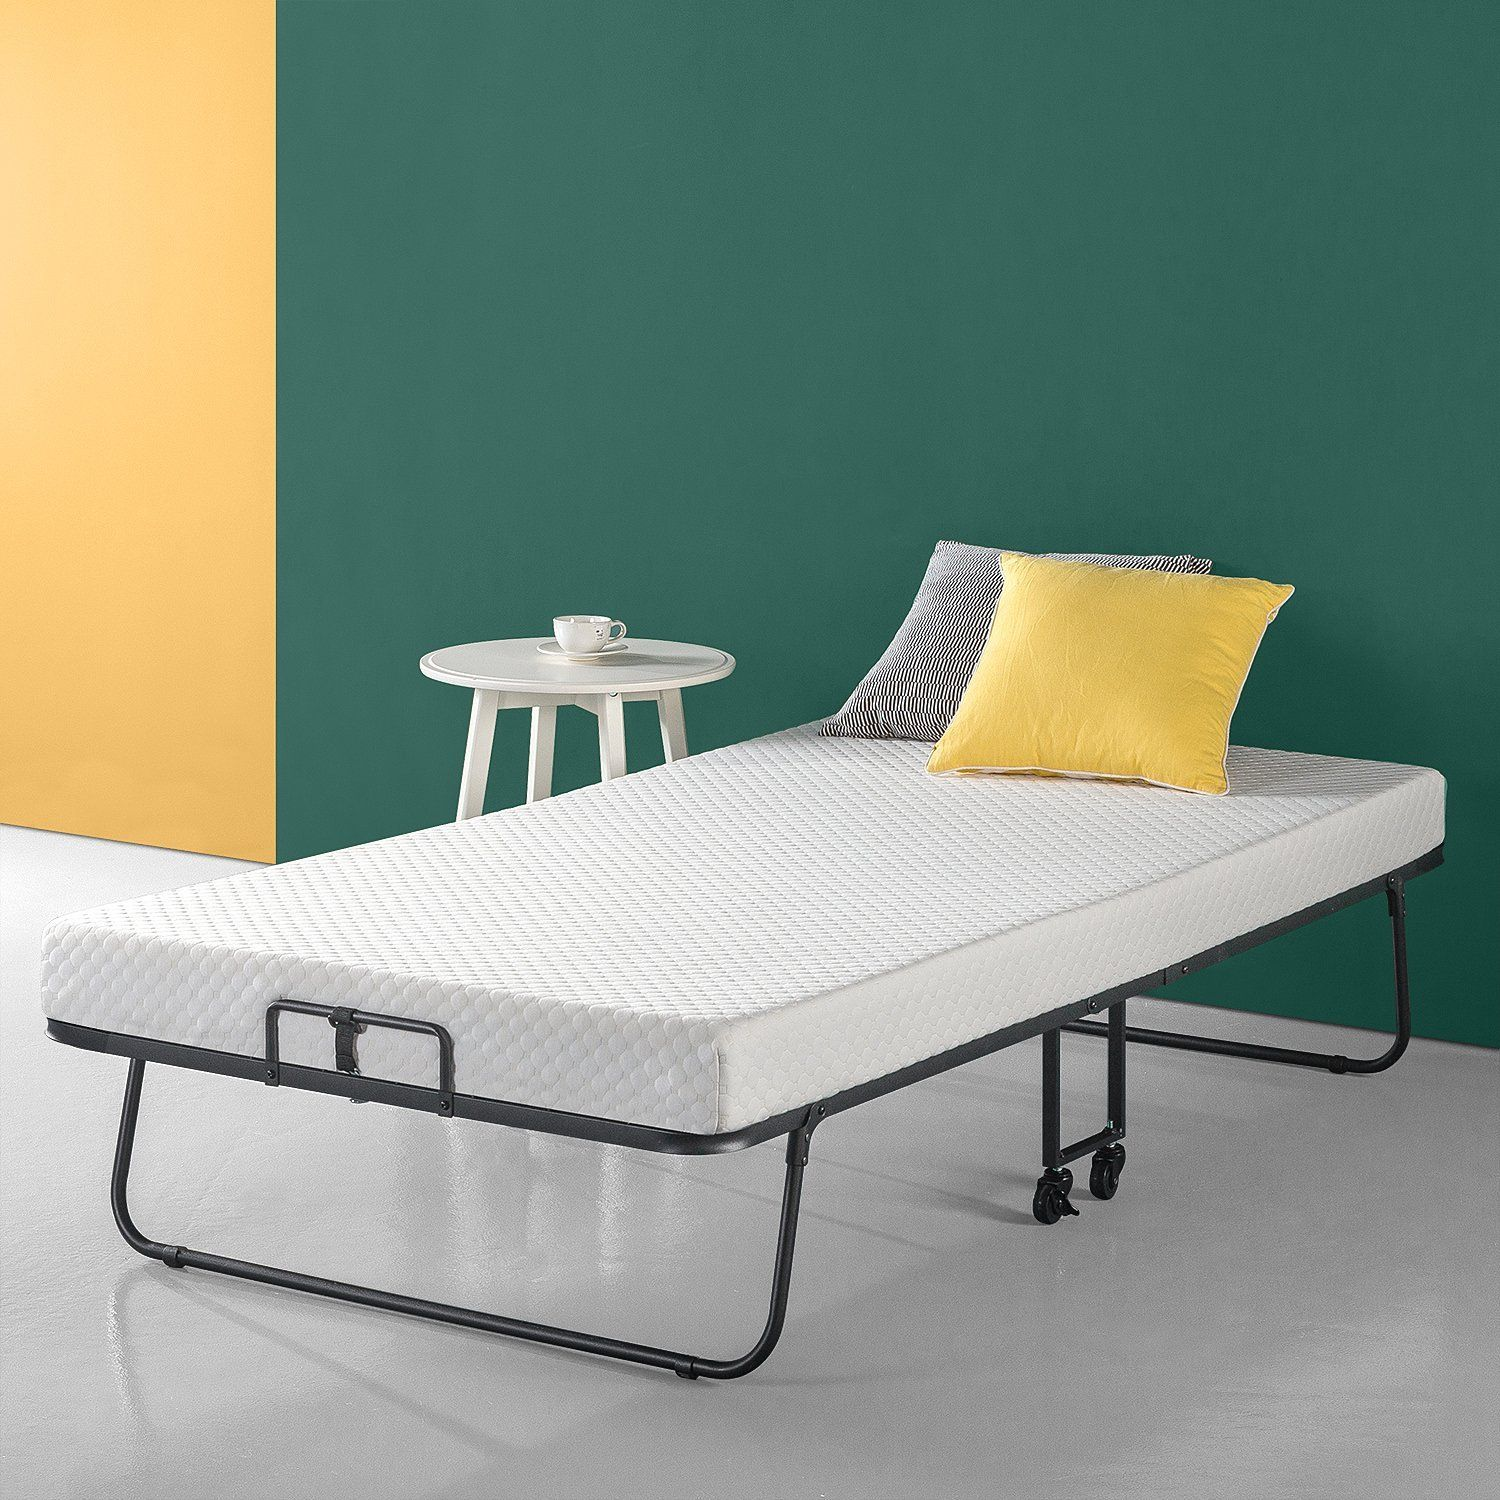 Picture of: 10 Best Rollaway Beds You Can Buy Online Most Comfortable Folding Guest Beds